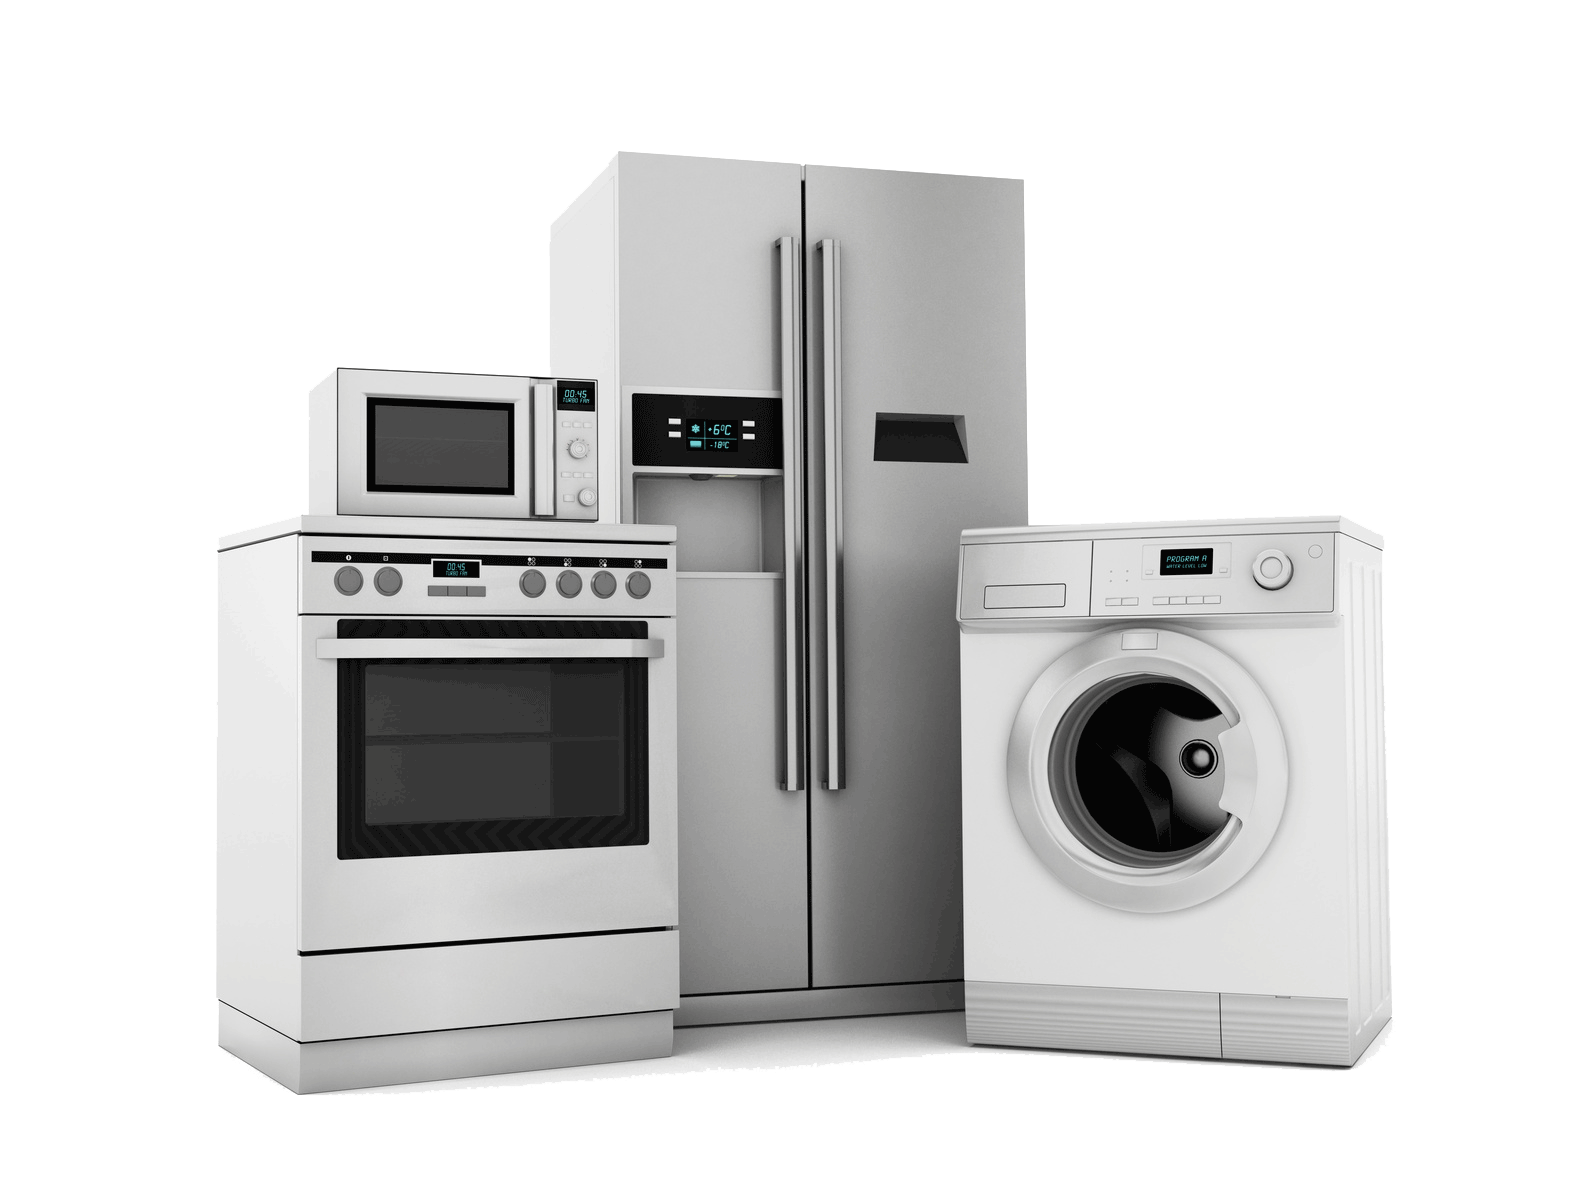 home appliances Find a great selection of appliances for kitchen or home at nfm we have a wide  array of kitchen and home appliances by top brands like samsung, ge & more.